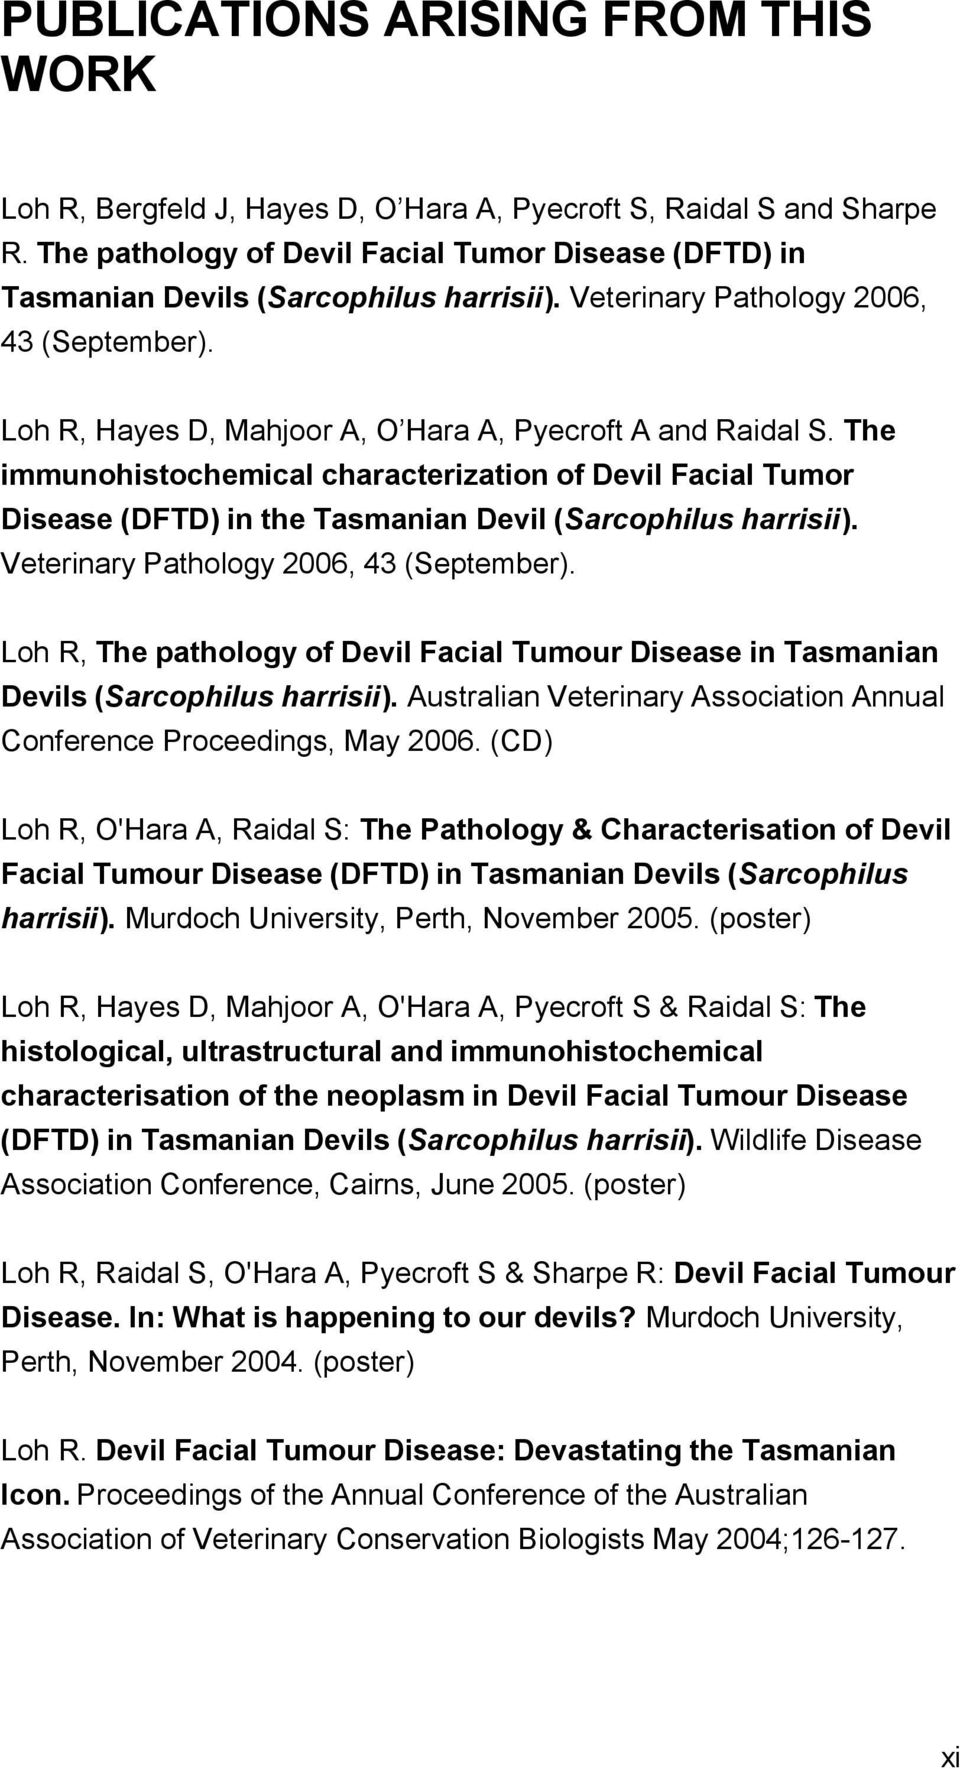 The immunohistochemical characterization of Devil Facial Tumor Disease (DFTD) in the Tasmanian Devil (Sarcophilus harrisii). Veterinary Pathology 2006, 43 (September).